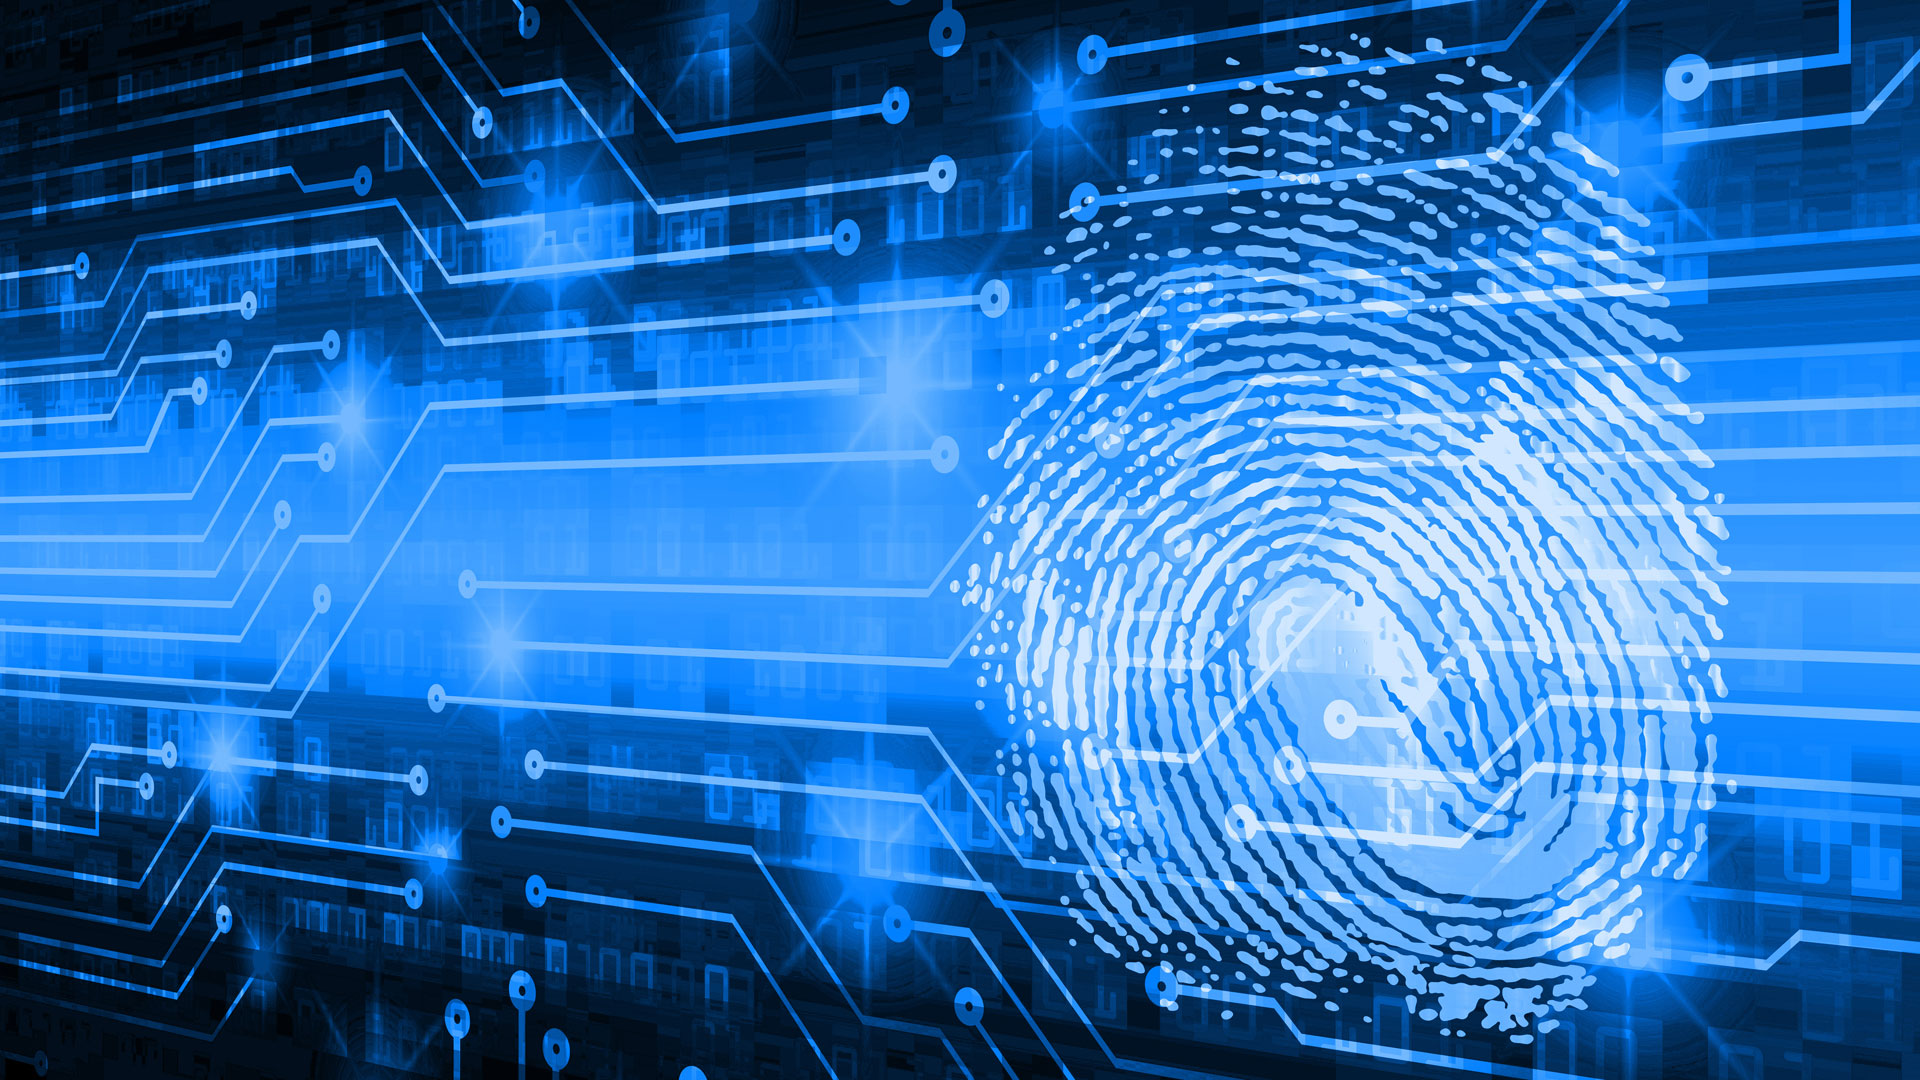 Digital fingerprint in blue